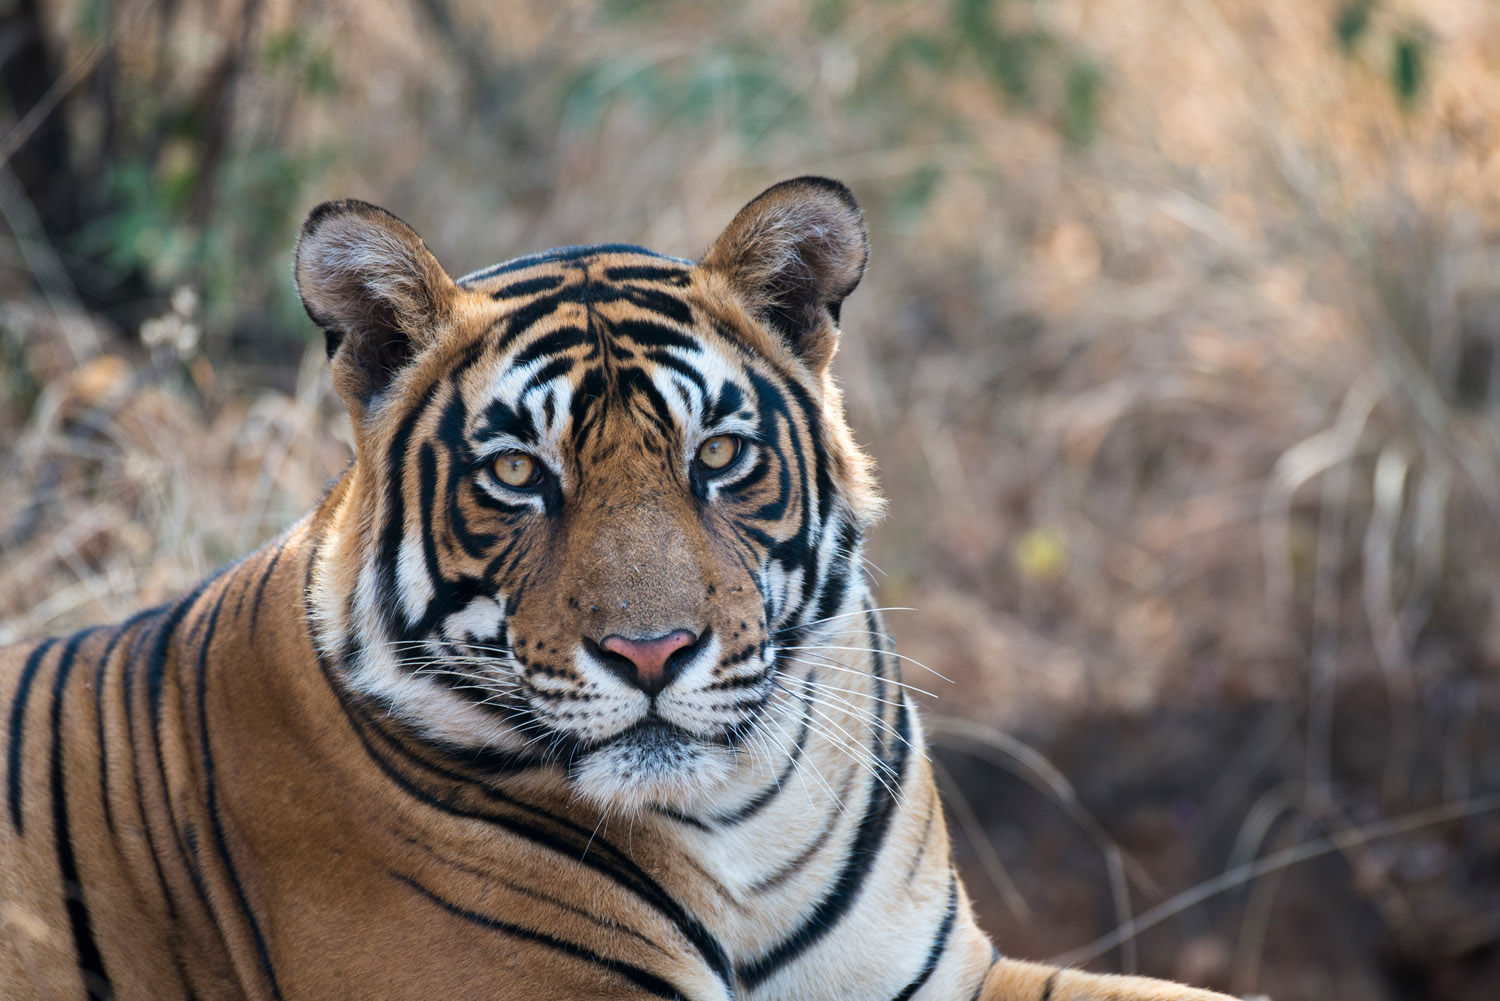 Bengal tiger portrait, Ranthambhore National Park, Rajasthan, India